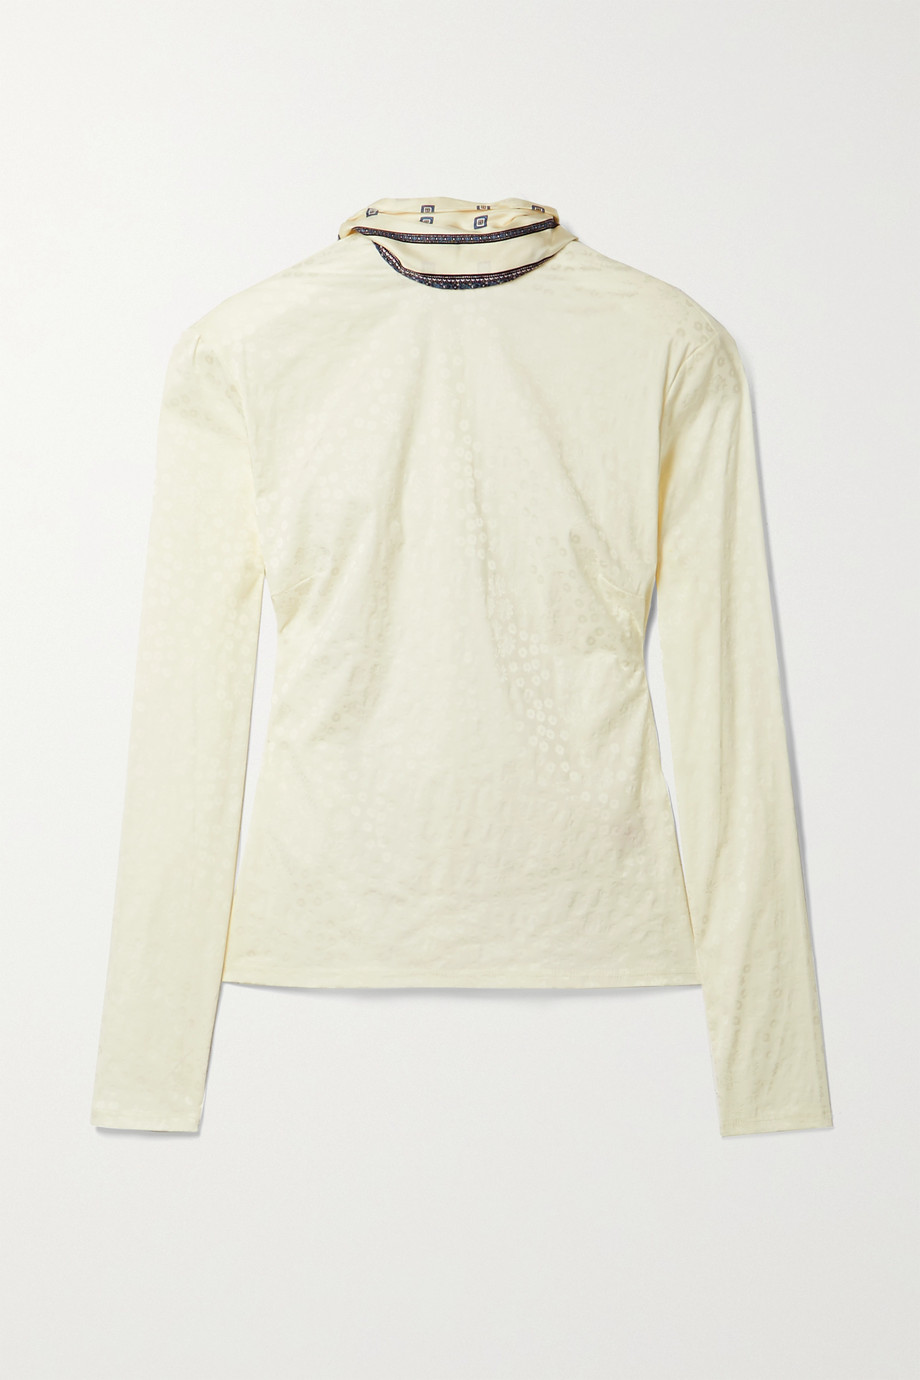 Rosie Assoulin By Any Other Name printed silk twill-trimmed stretch-jacquard turtleneck top